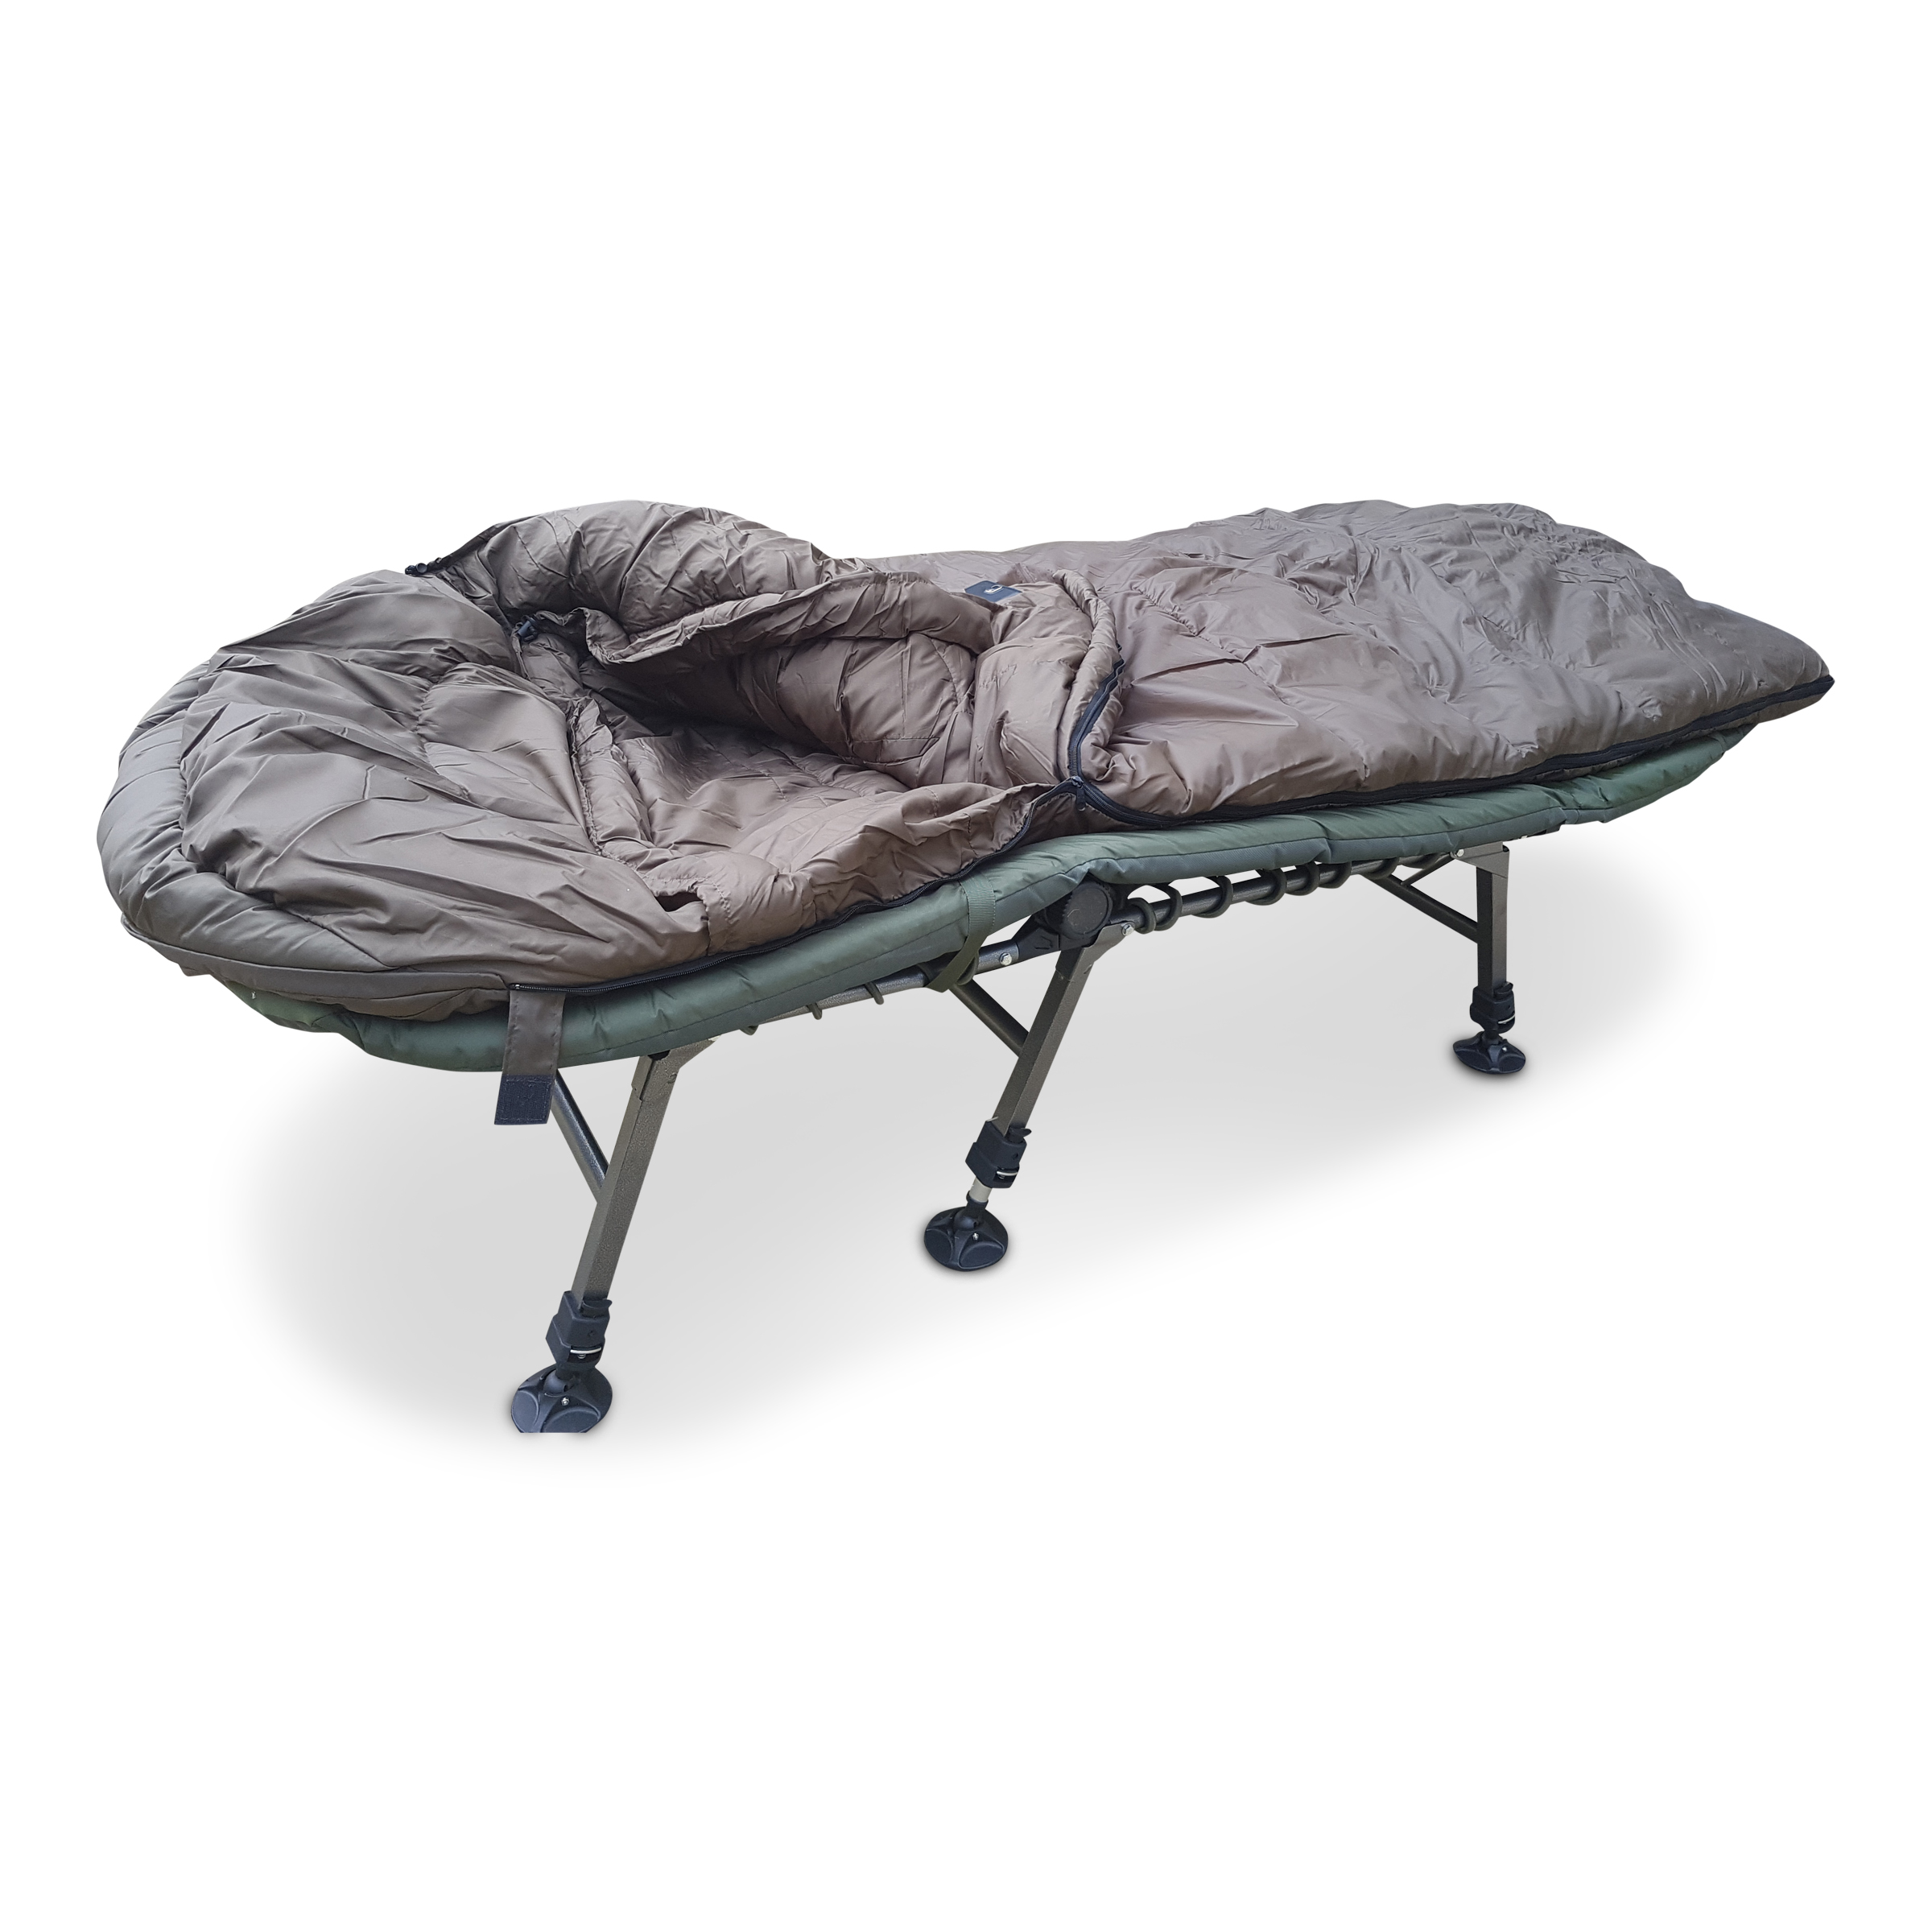 Cyprinus Deepsnooze 5 Season Carp Fishing Sleeping Bag ...